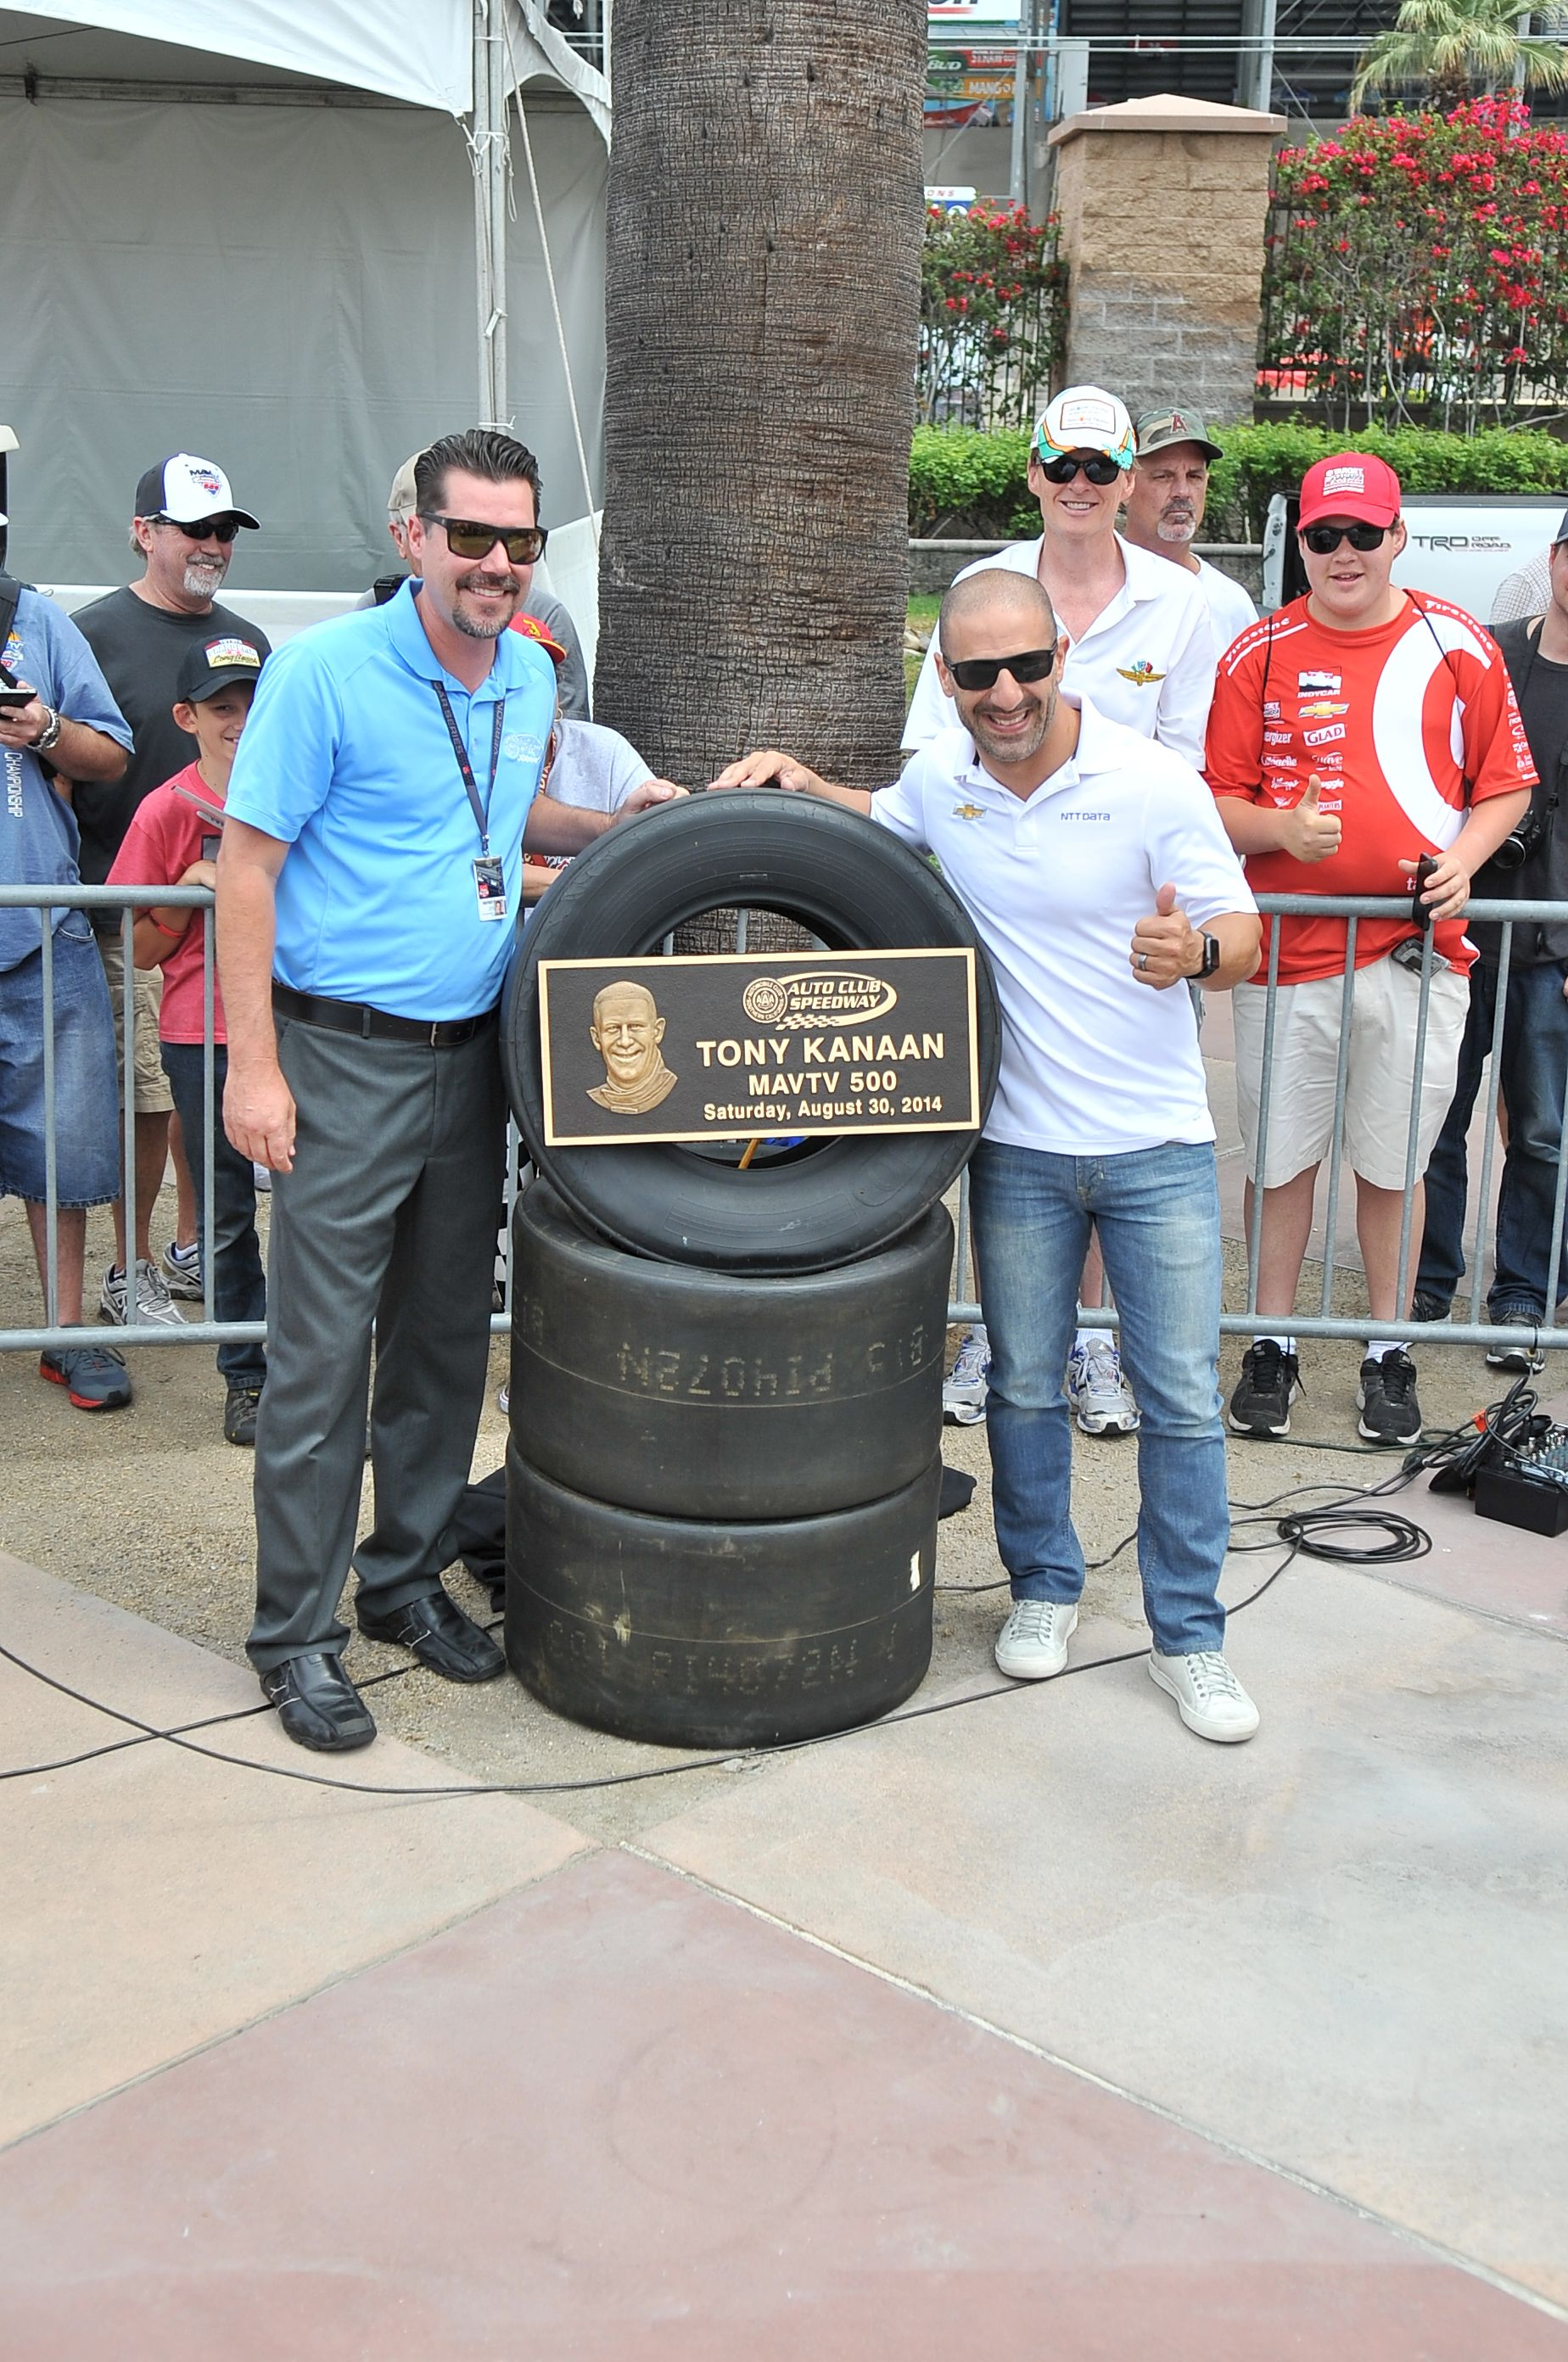 INDYCAR driver Tony Kanaan poses with Auto Club Speedway president Dave Allen for the MAVTV 2014 Walk of Fame Ceremony. #TonyKanaan #AutoClubSpeedway #WalkofFame